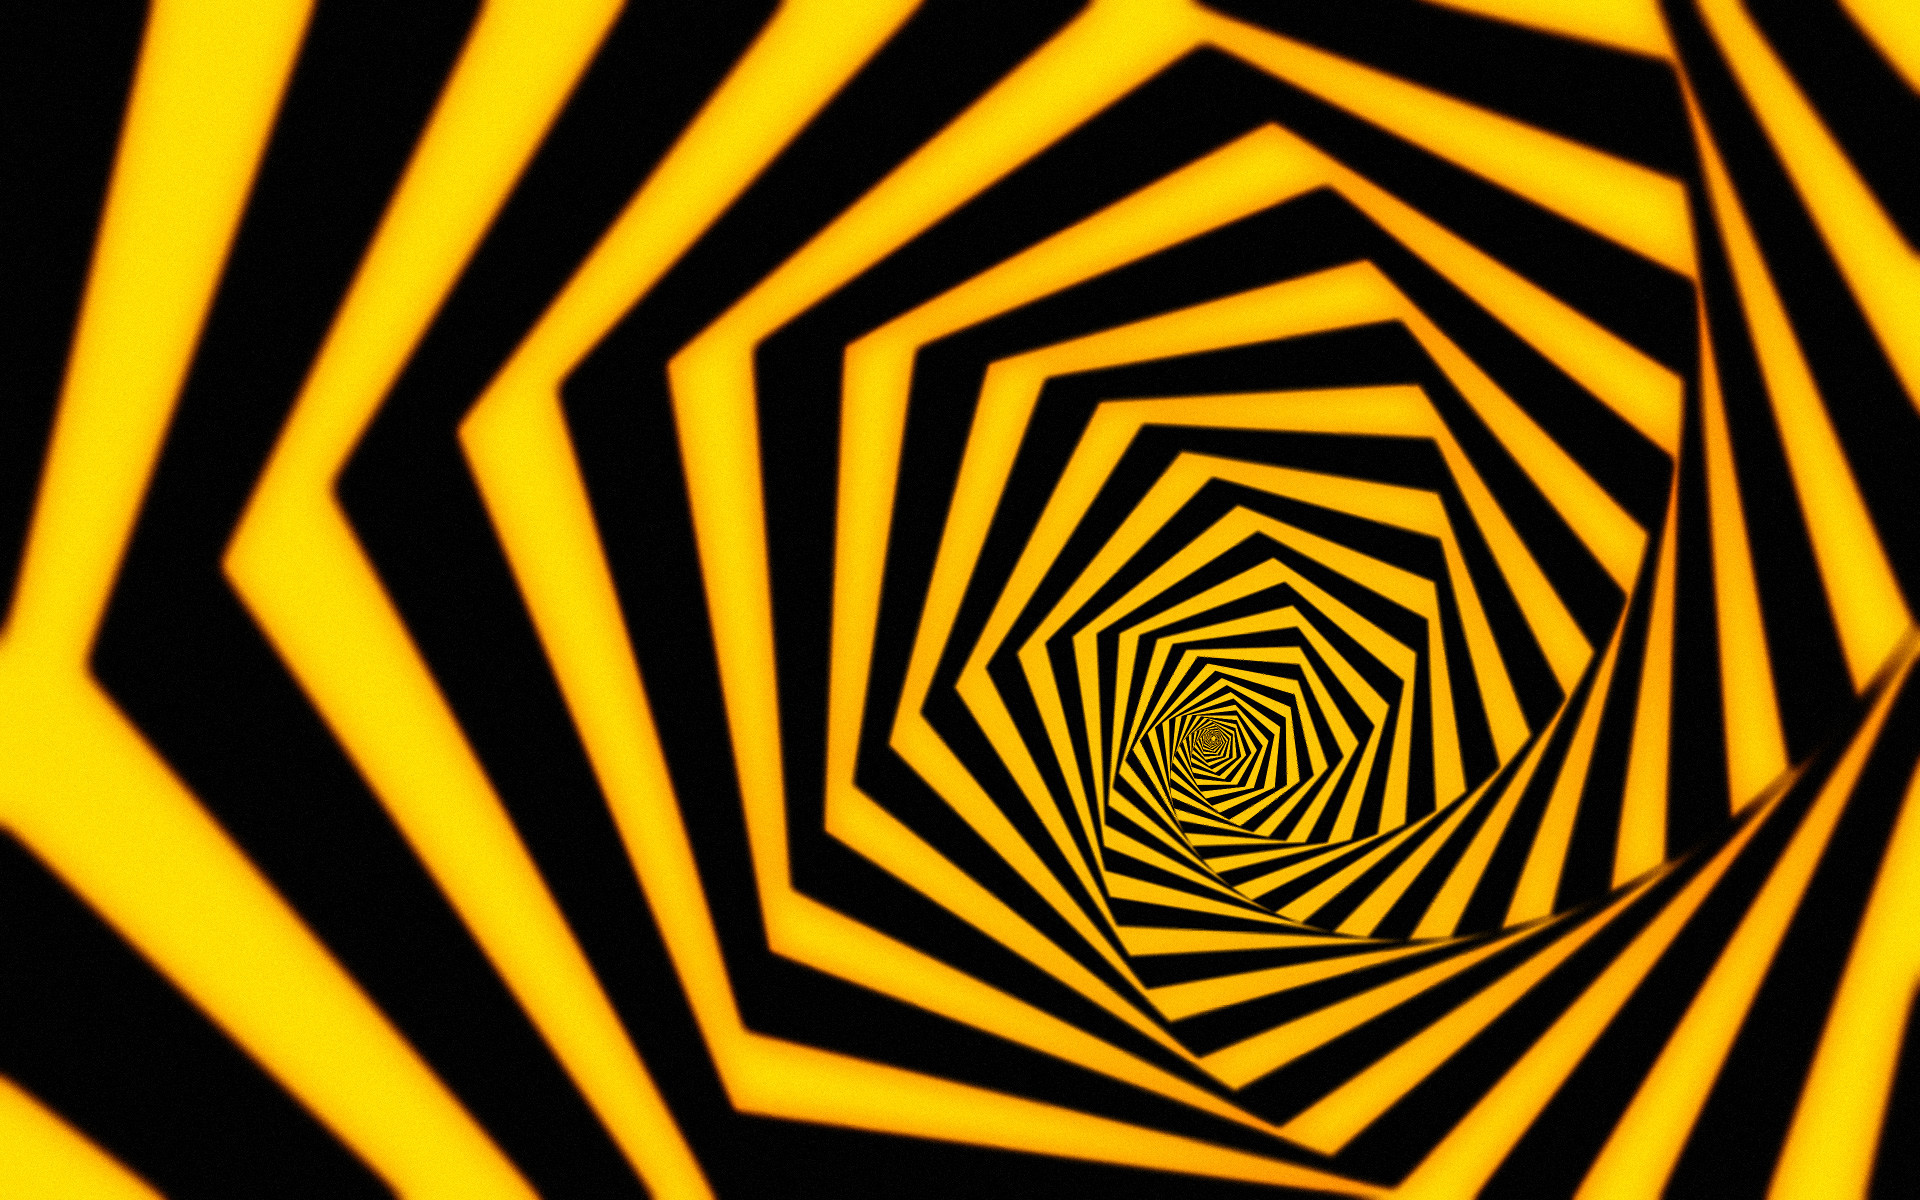 Hypnosis Moving Wallpaper 67 images 1920x1200